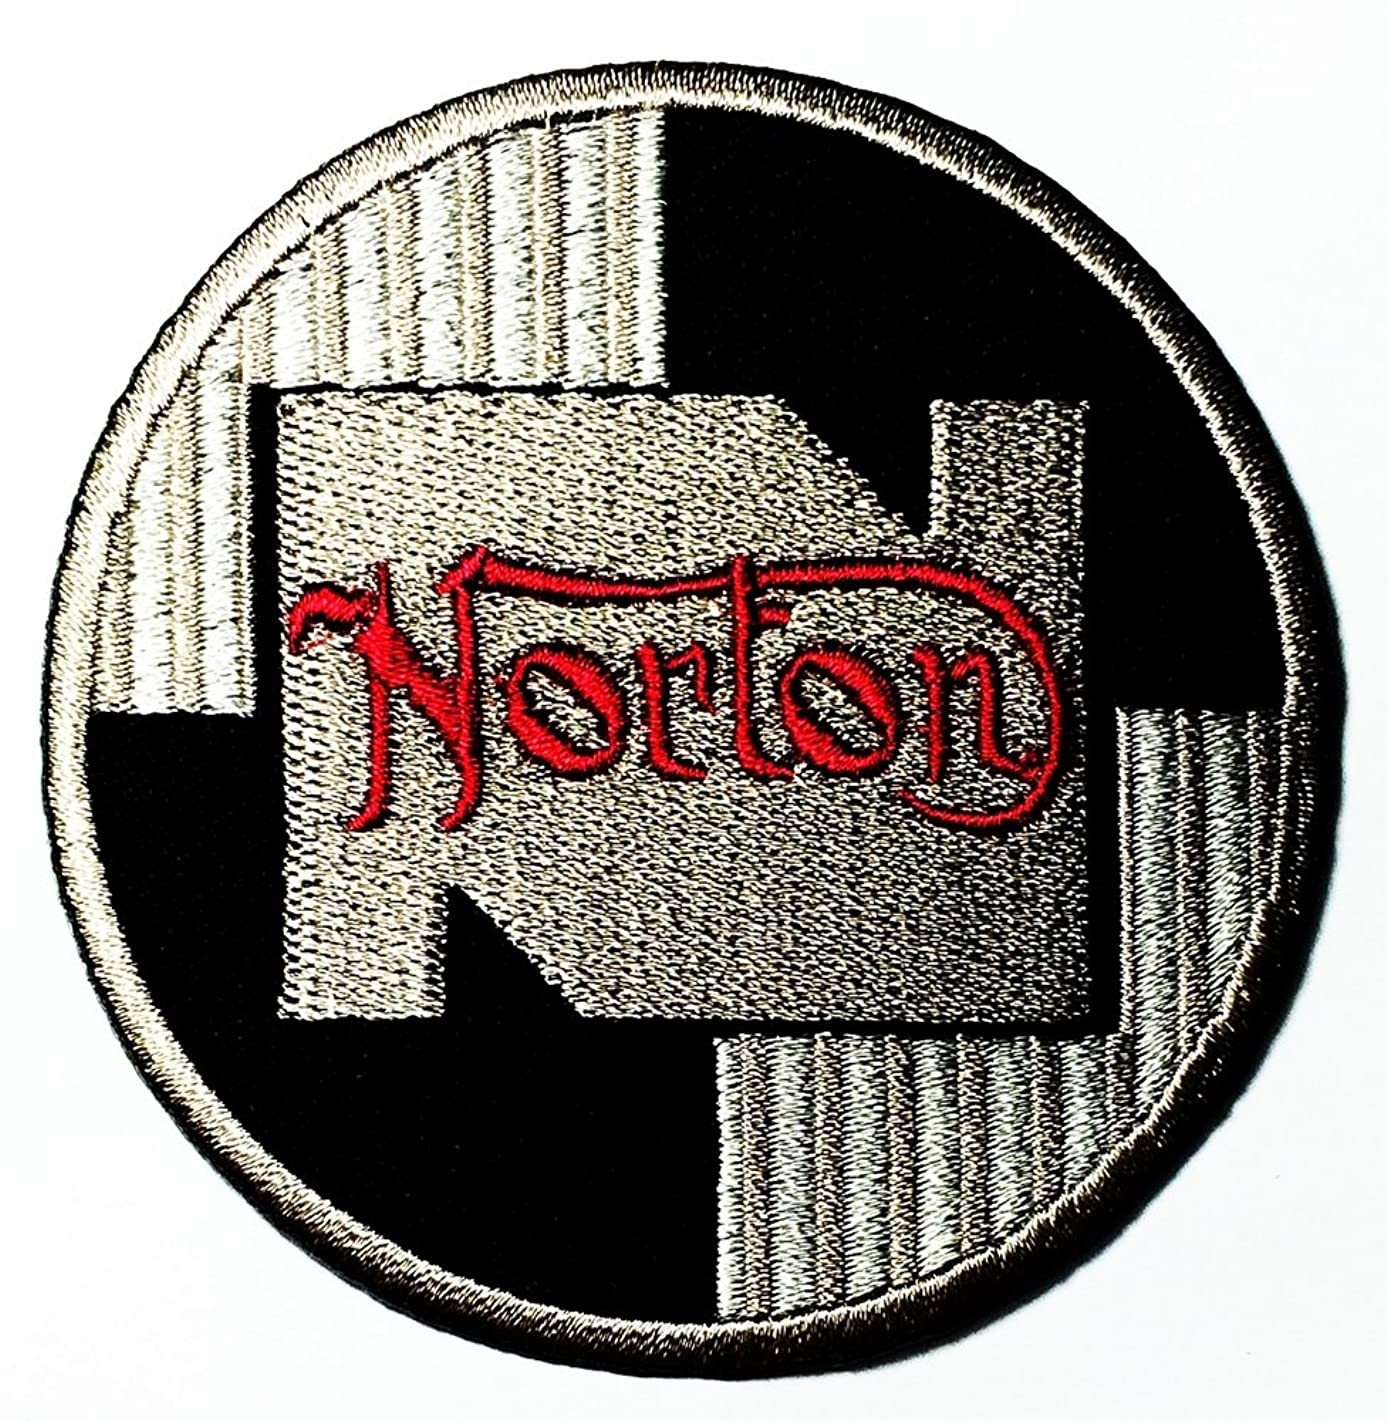 Norton wing blue Super Bikes Motorcycle Biker Motorcycles Motorsport Racing logo patch Jacket T-shirt Sew Iron on Patch Badge Embroidery